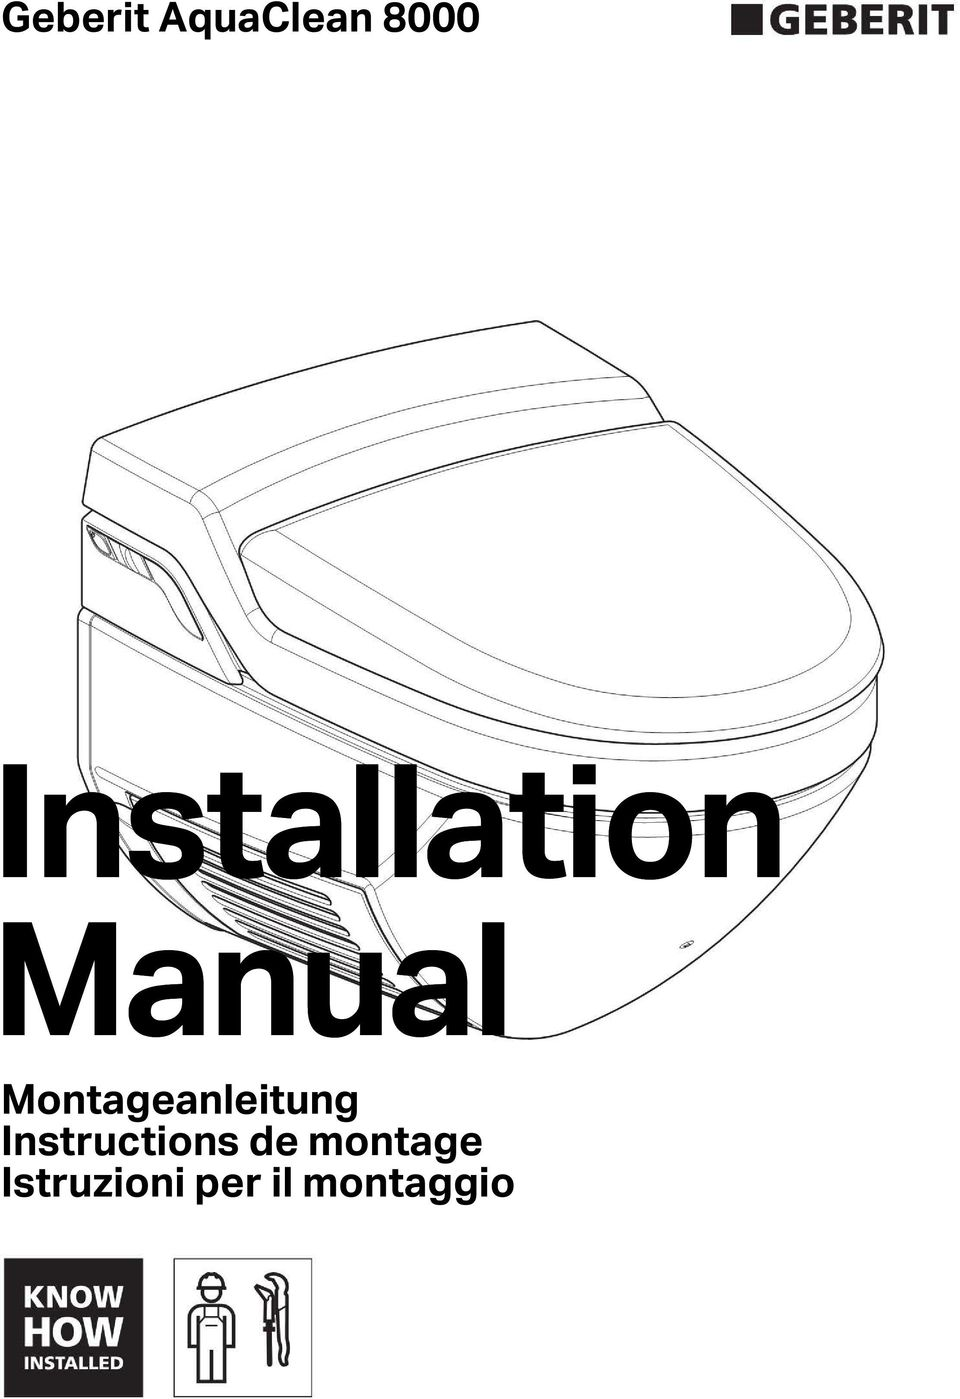 geberit aquaclean installation manual montageanleitung instructions de montage istruzioni per il. Black Bedroom Furniture Sets. Home Design Ideas